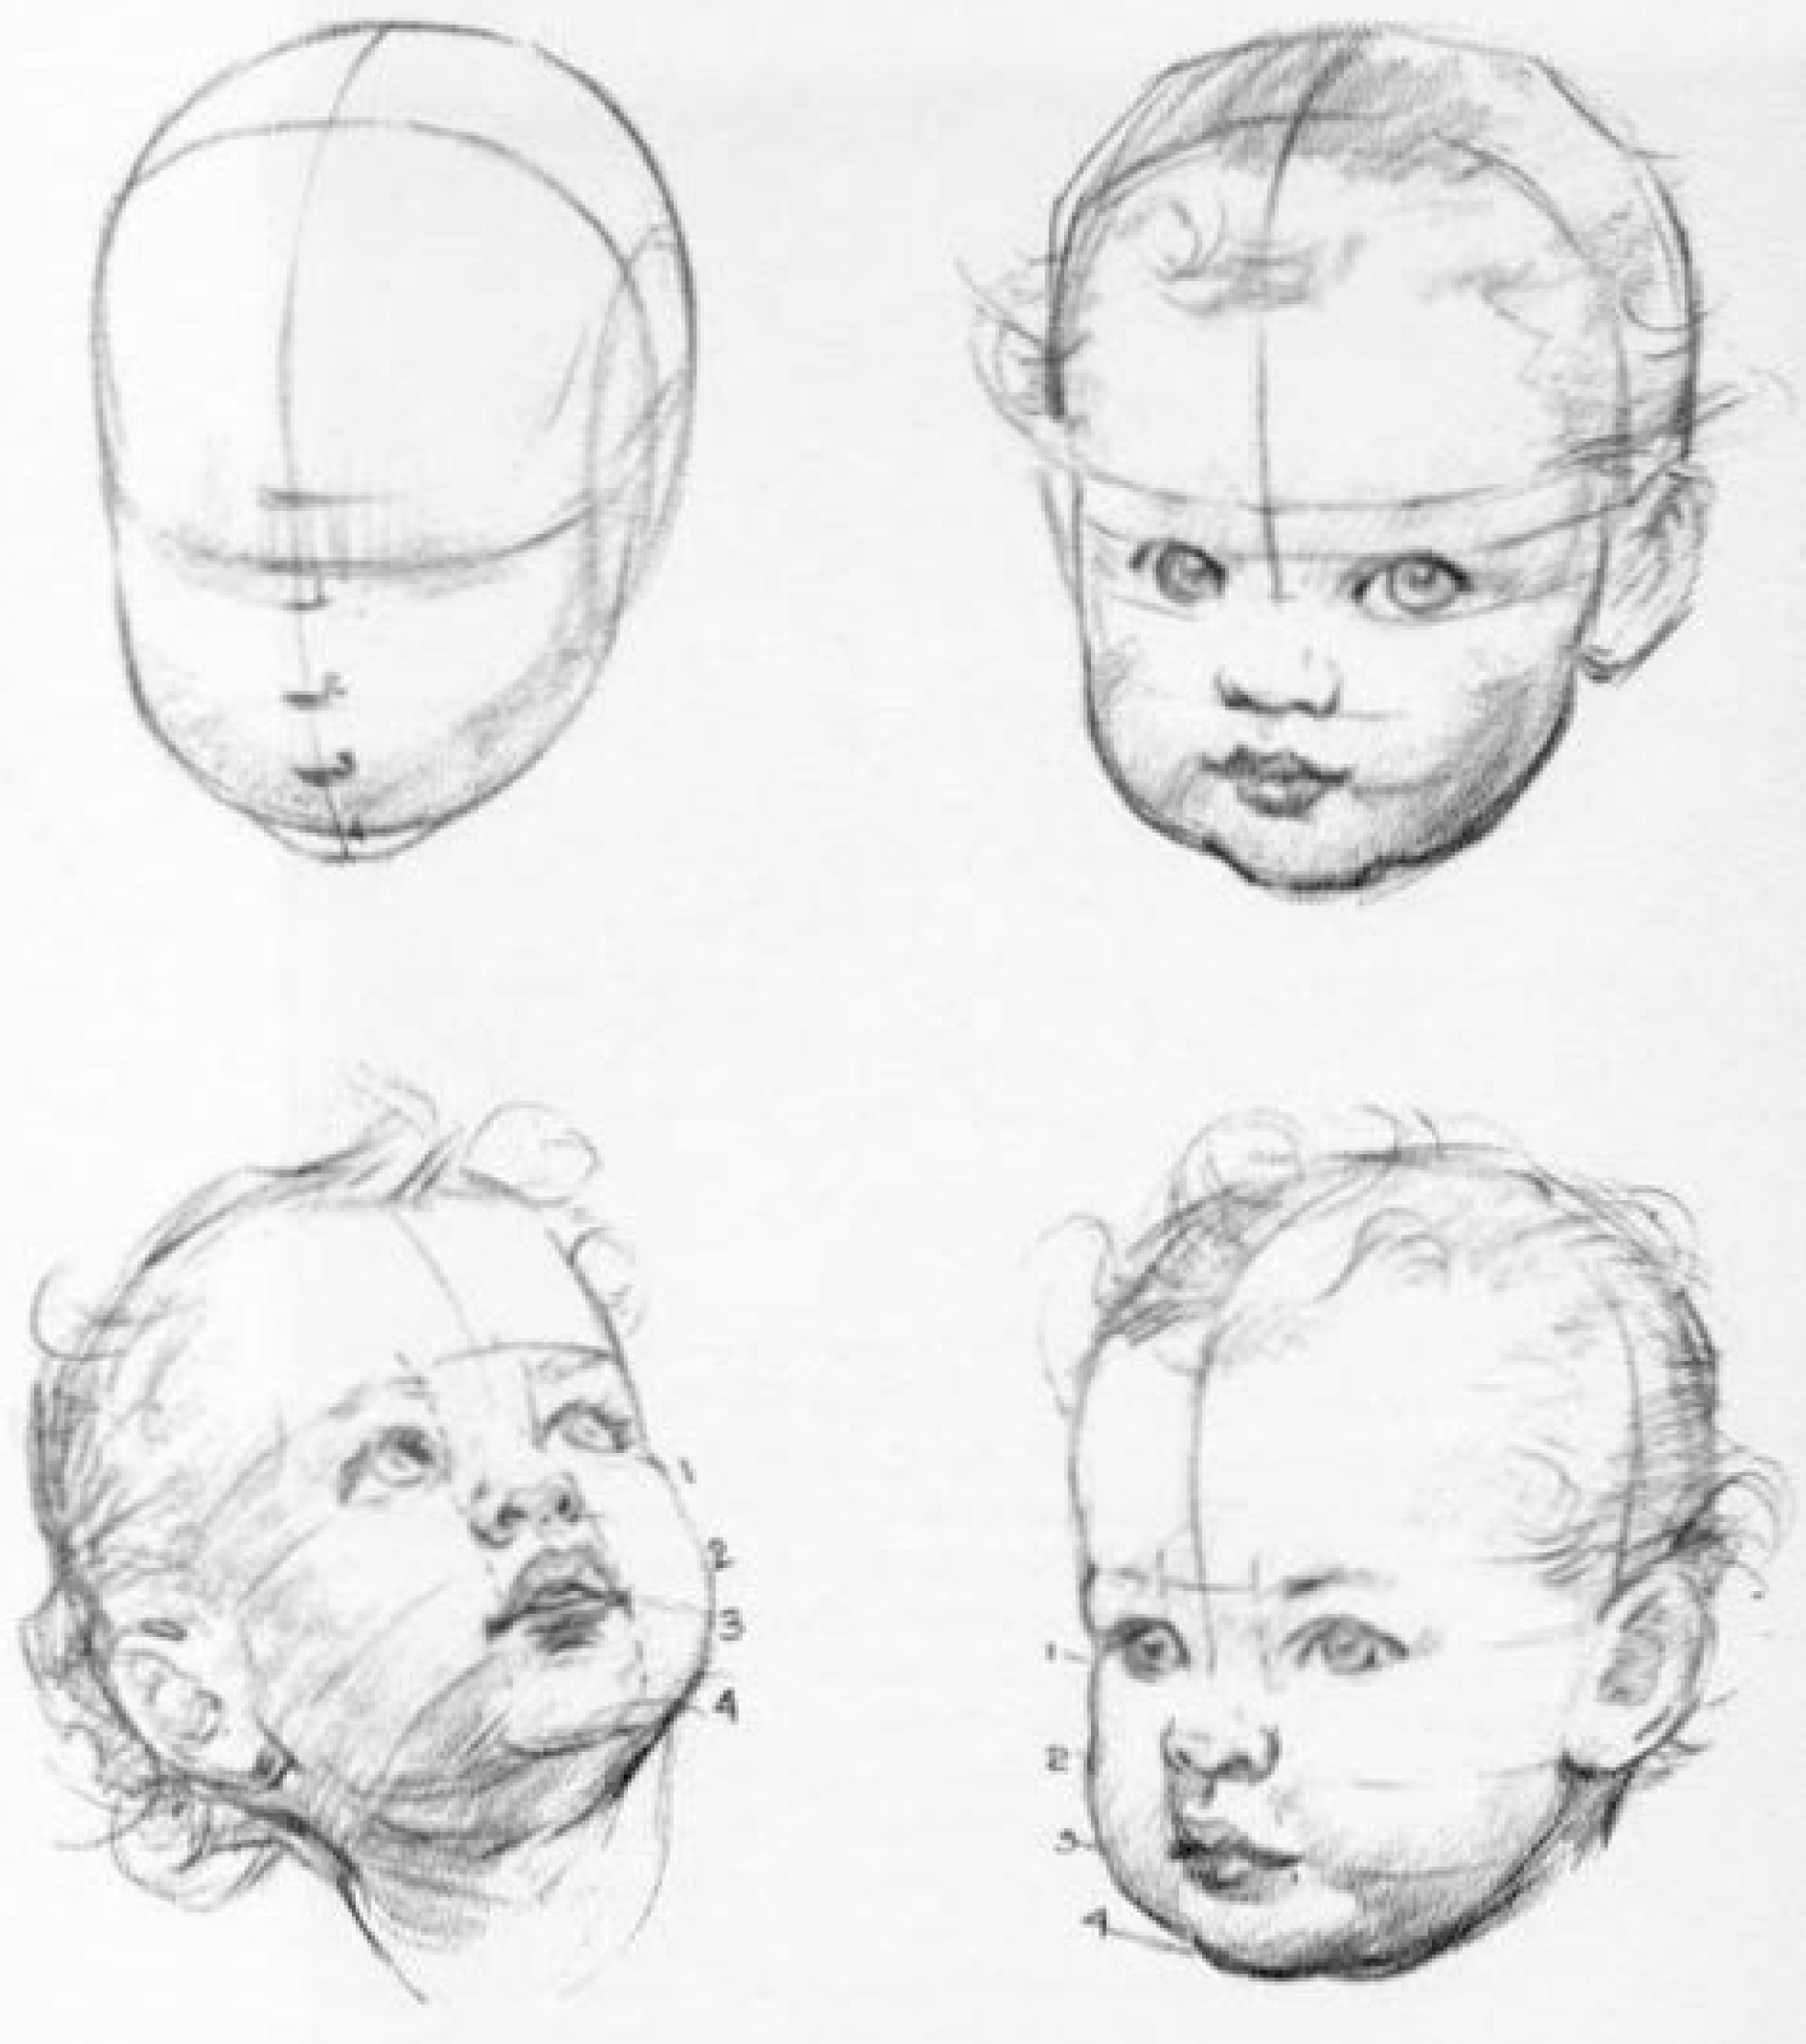 drawing the baby and toddler head in the correct proportions